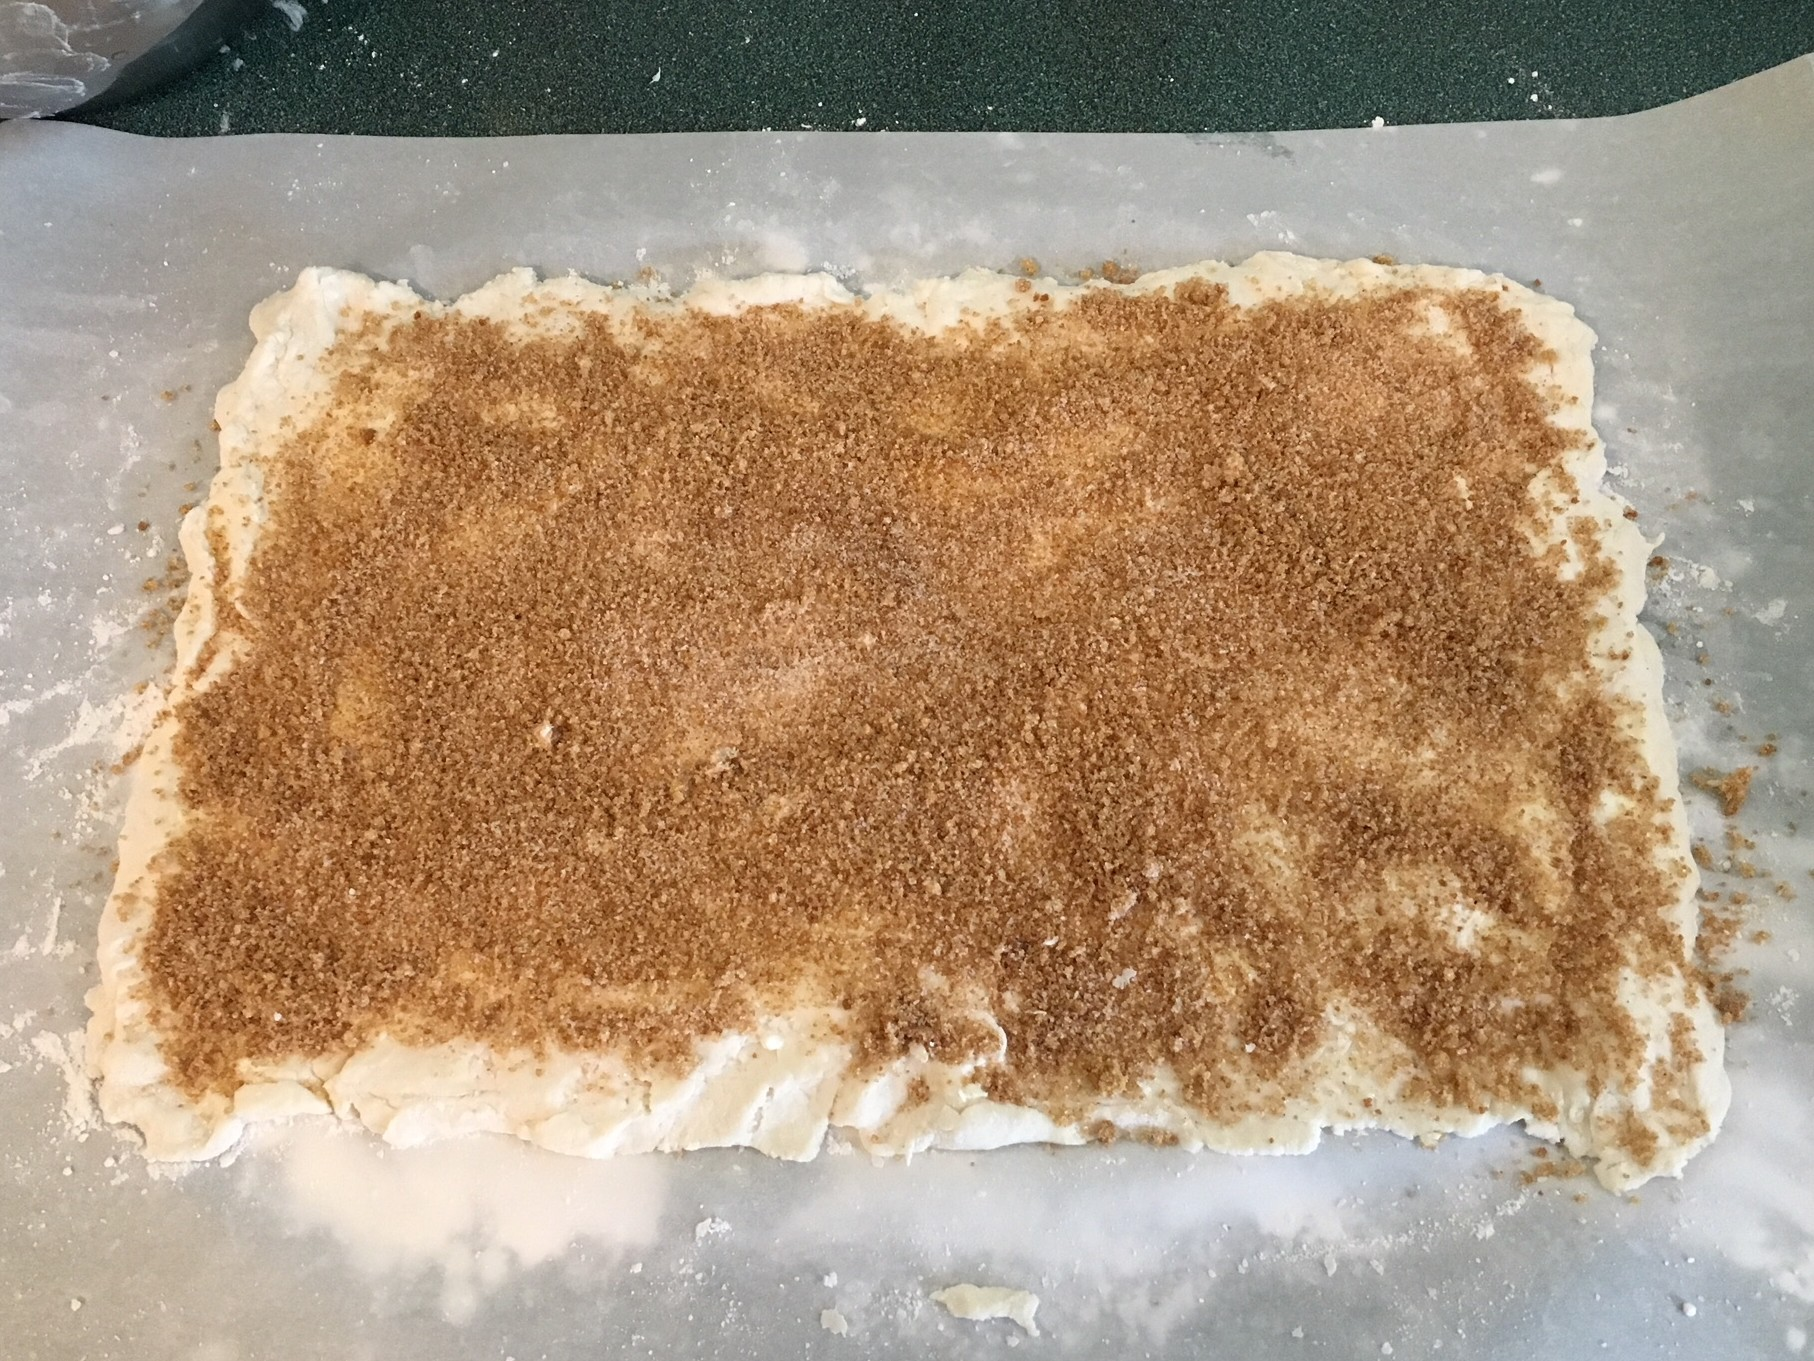 biscuit dough rolled into rectangle with sprinkle cinnamon sugar